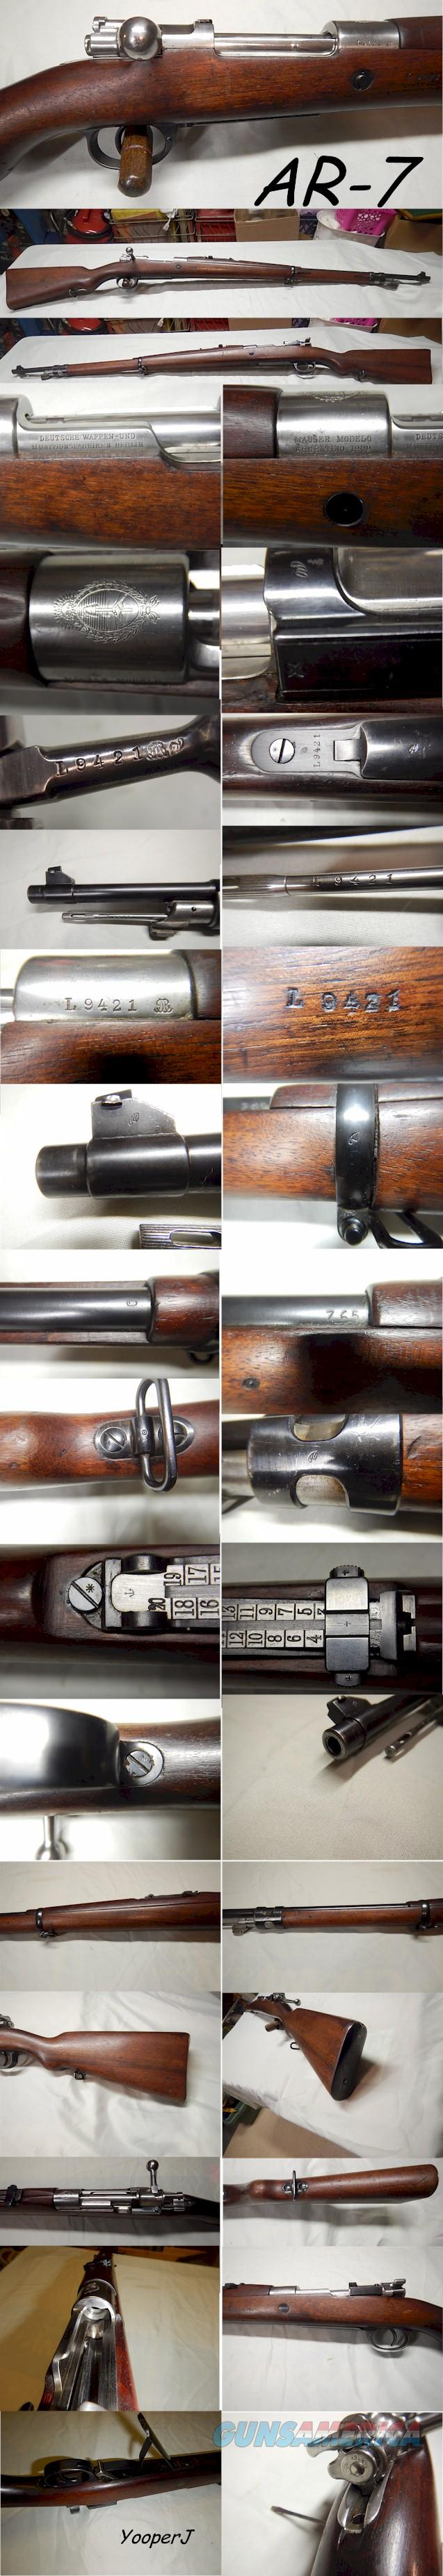 Argentine Model 1909 Rifle - Super nice all matching-Free Shipping- Awesome!  Guns > Rifles > Mauser Rifles > German